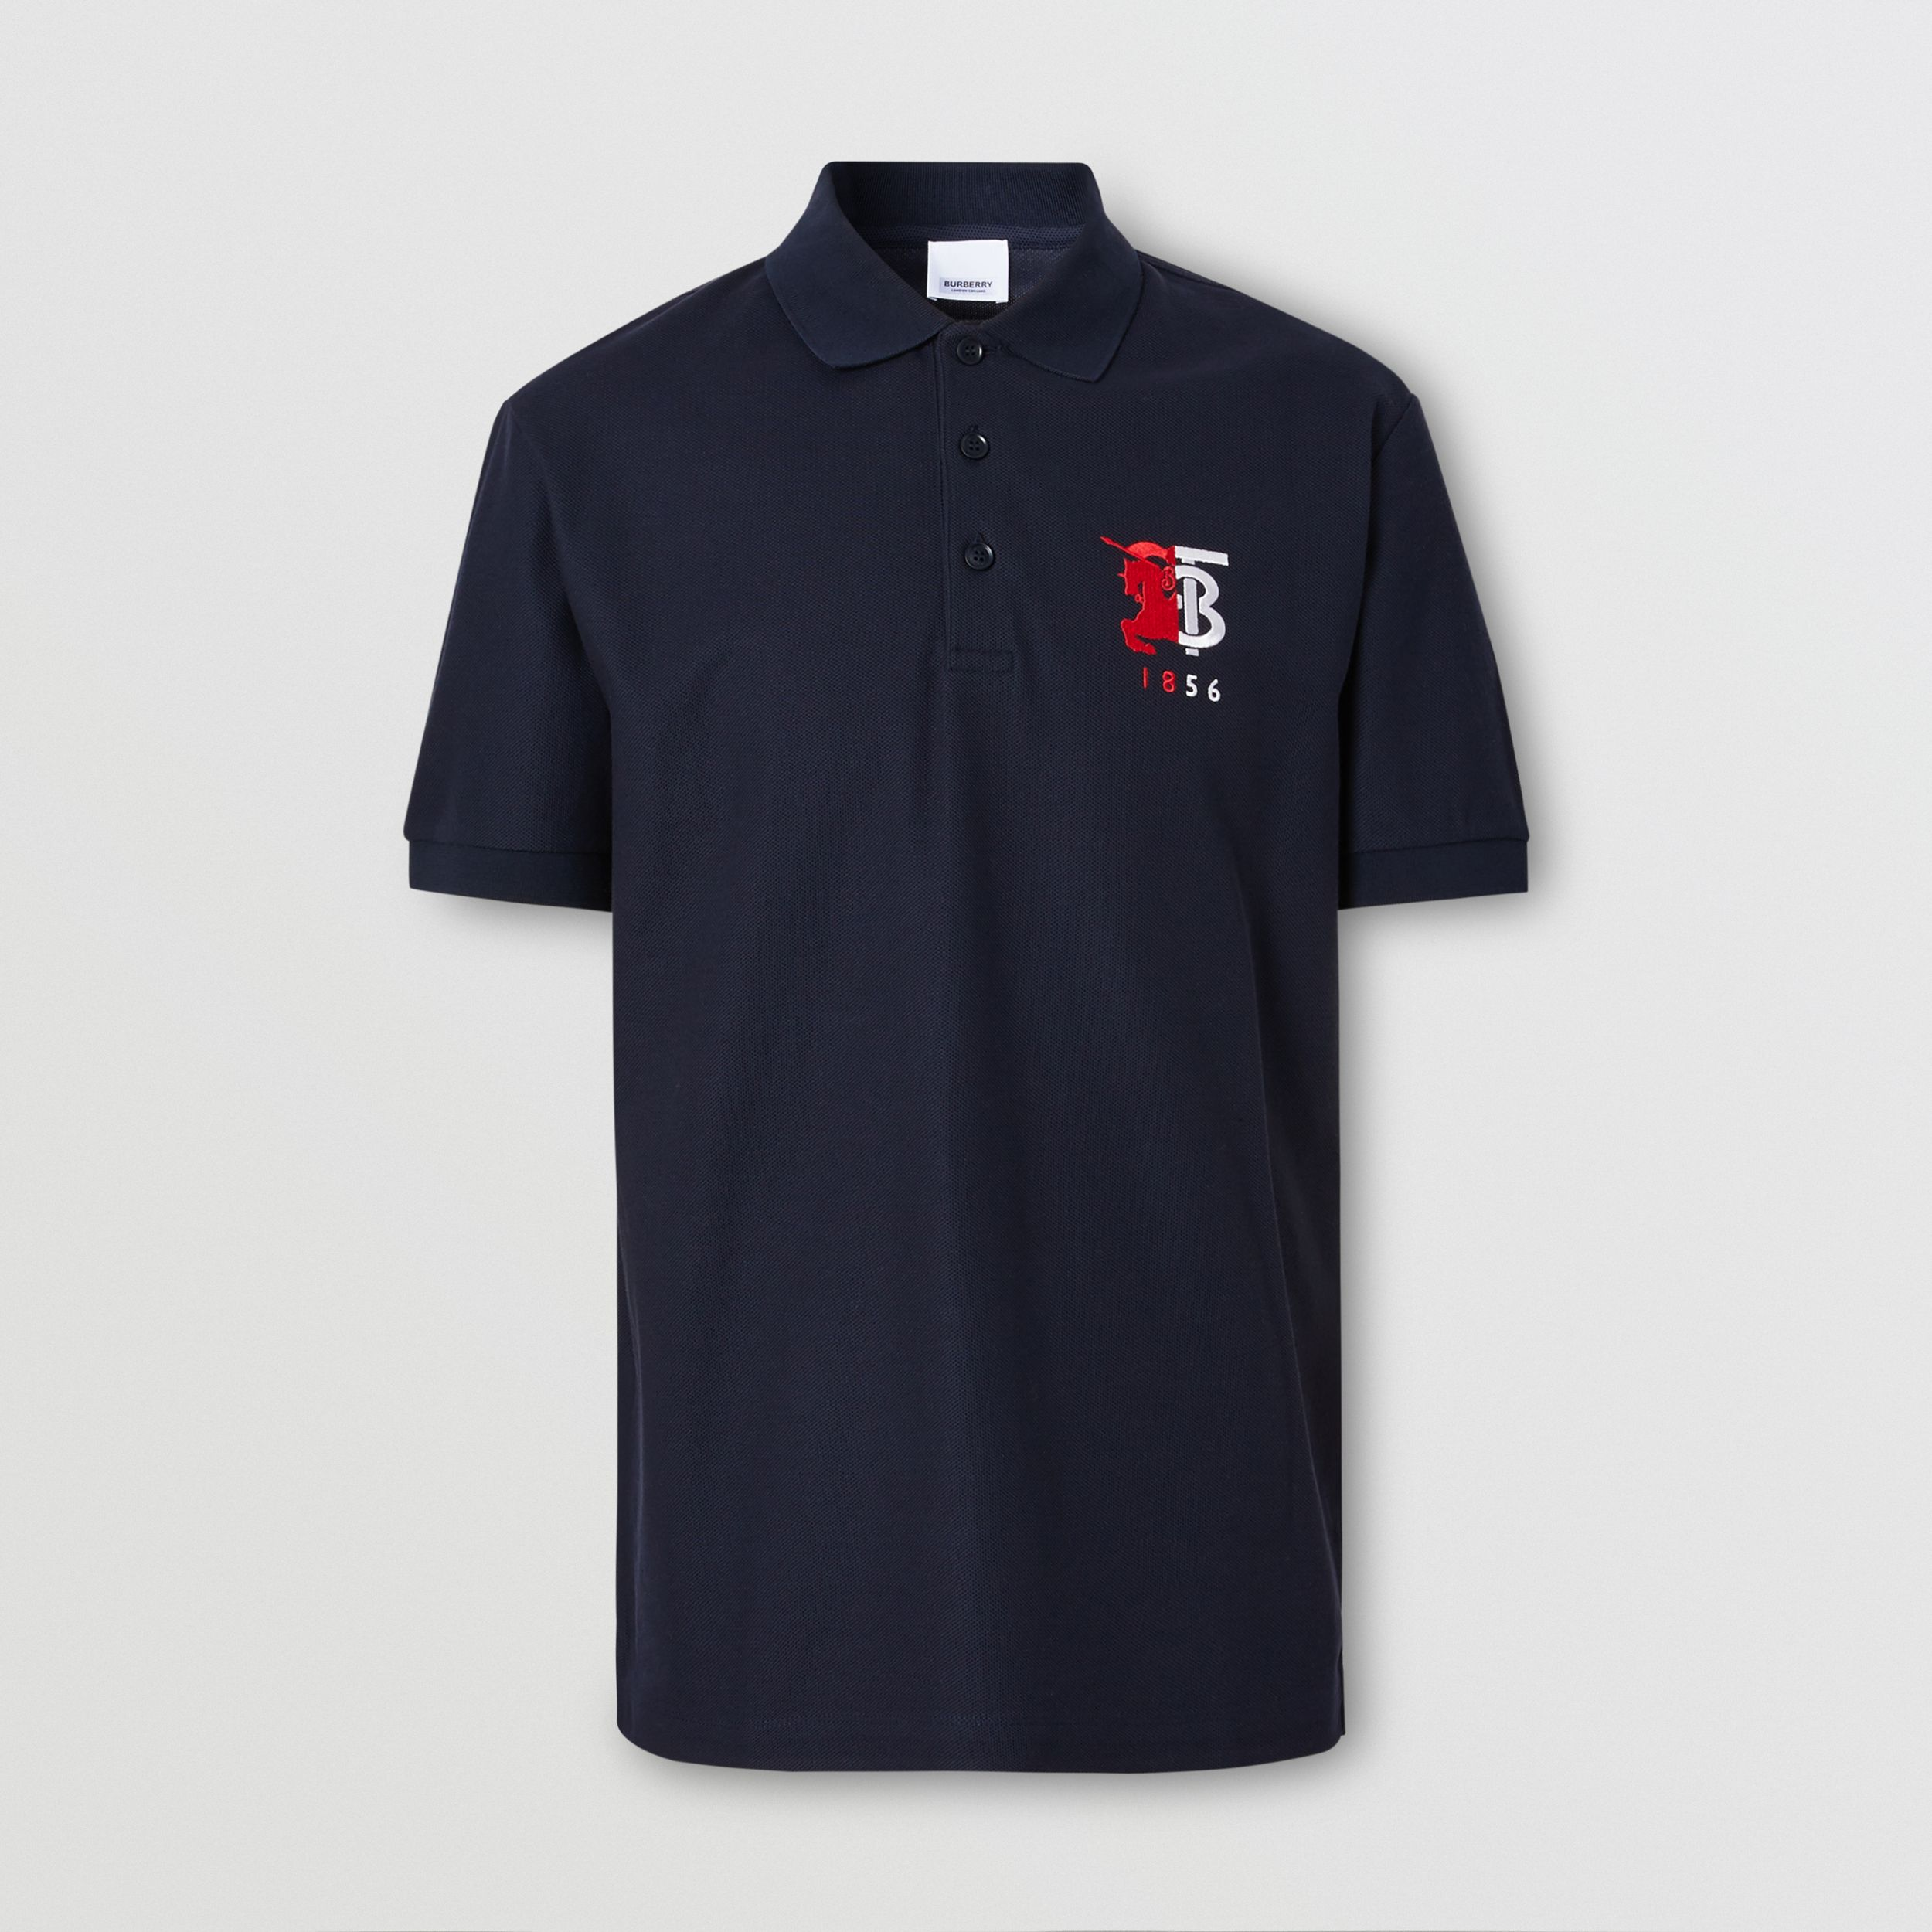 Contrast Logo Graphic Cotton Piqué Polo Shirt in Navy - Men | Burberry - 4